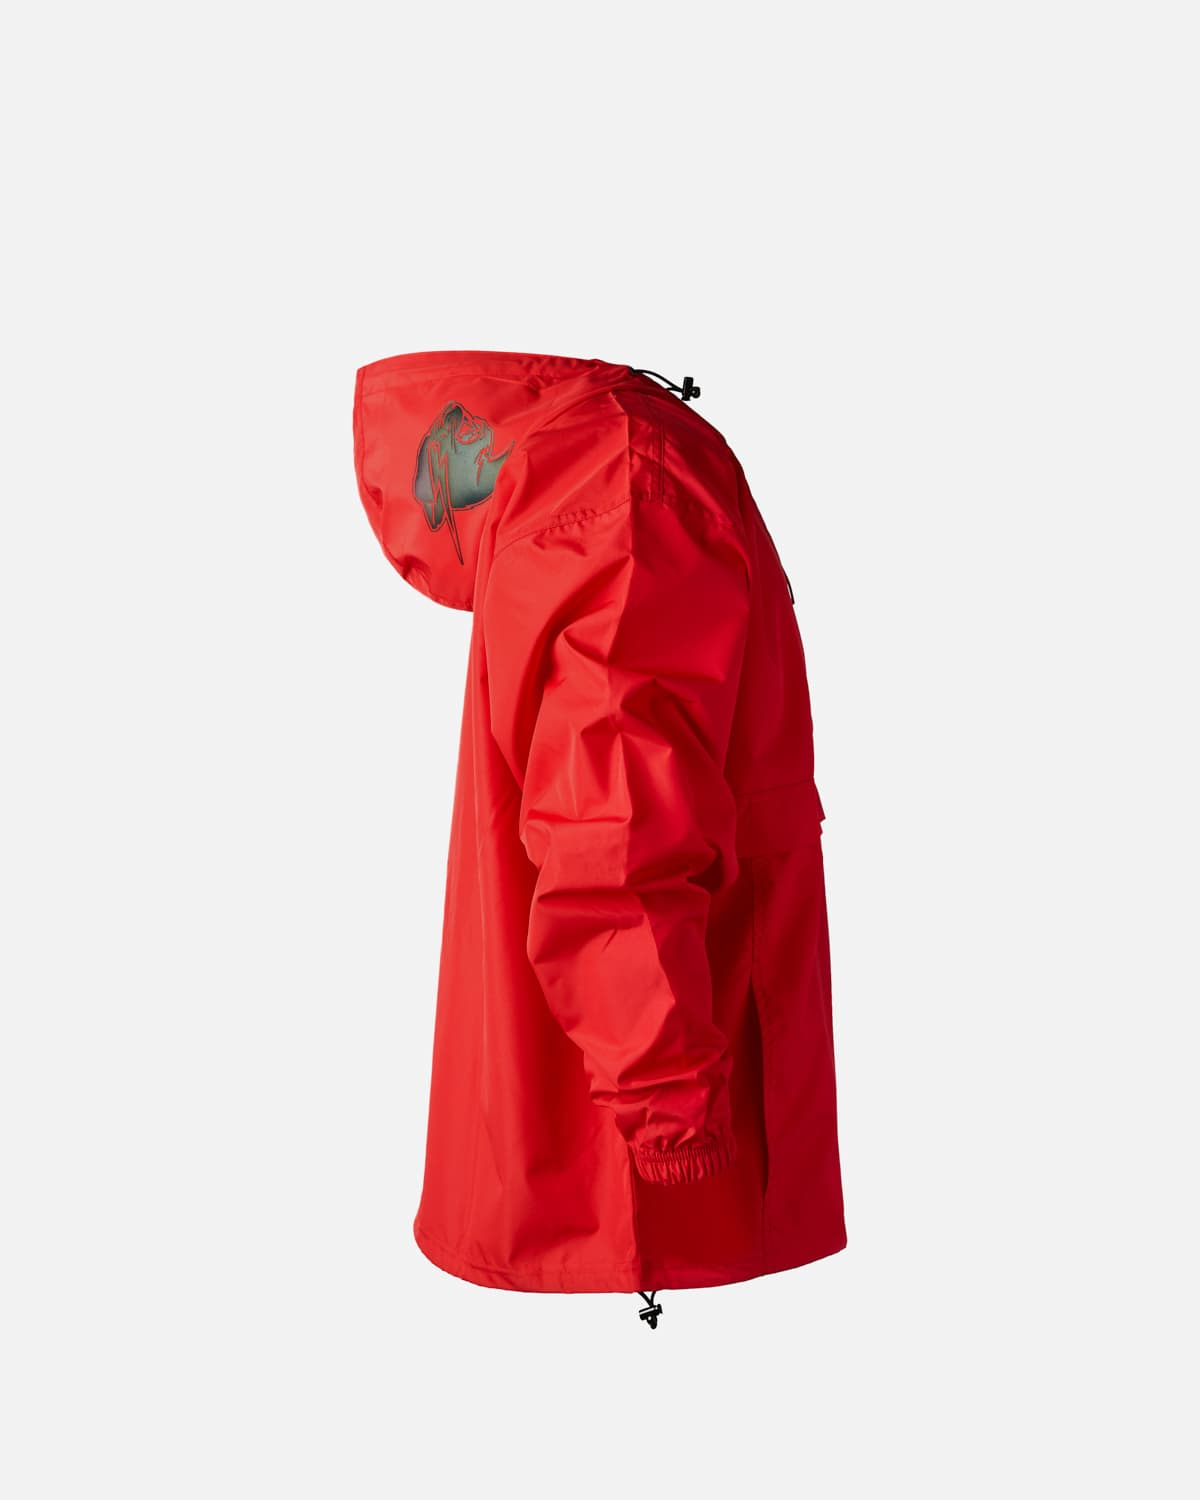 'Beast' Spectrum Reflective Champion Packable Anorak - Red